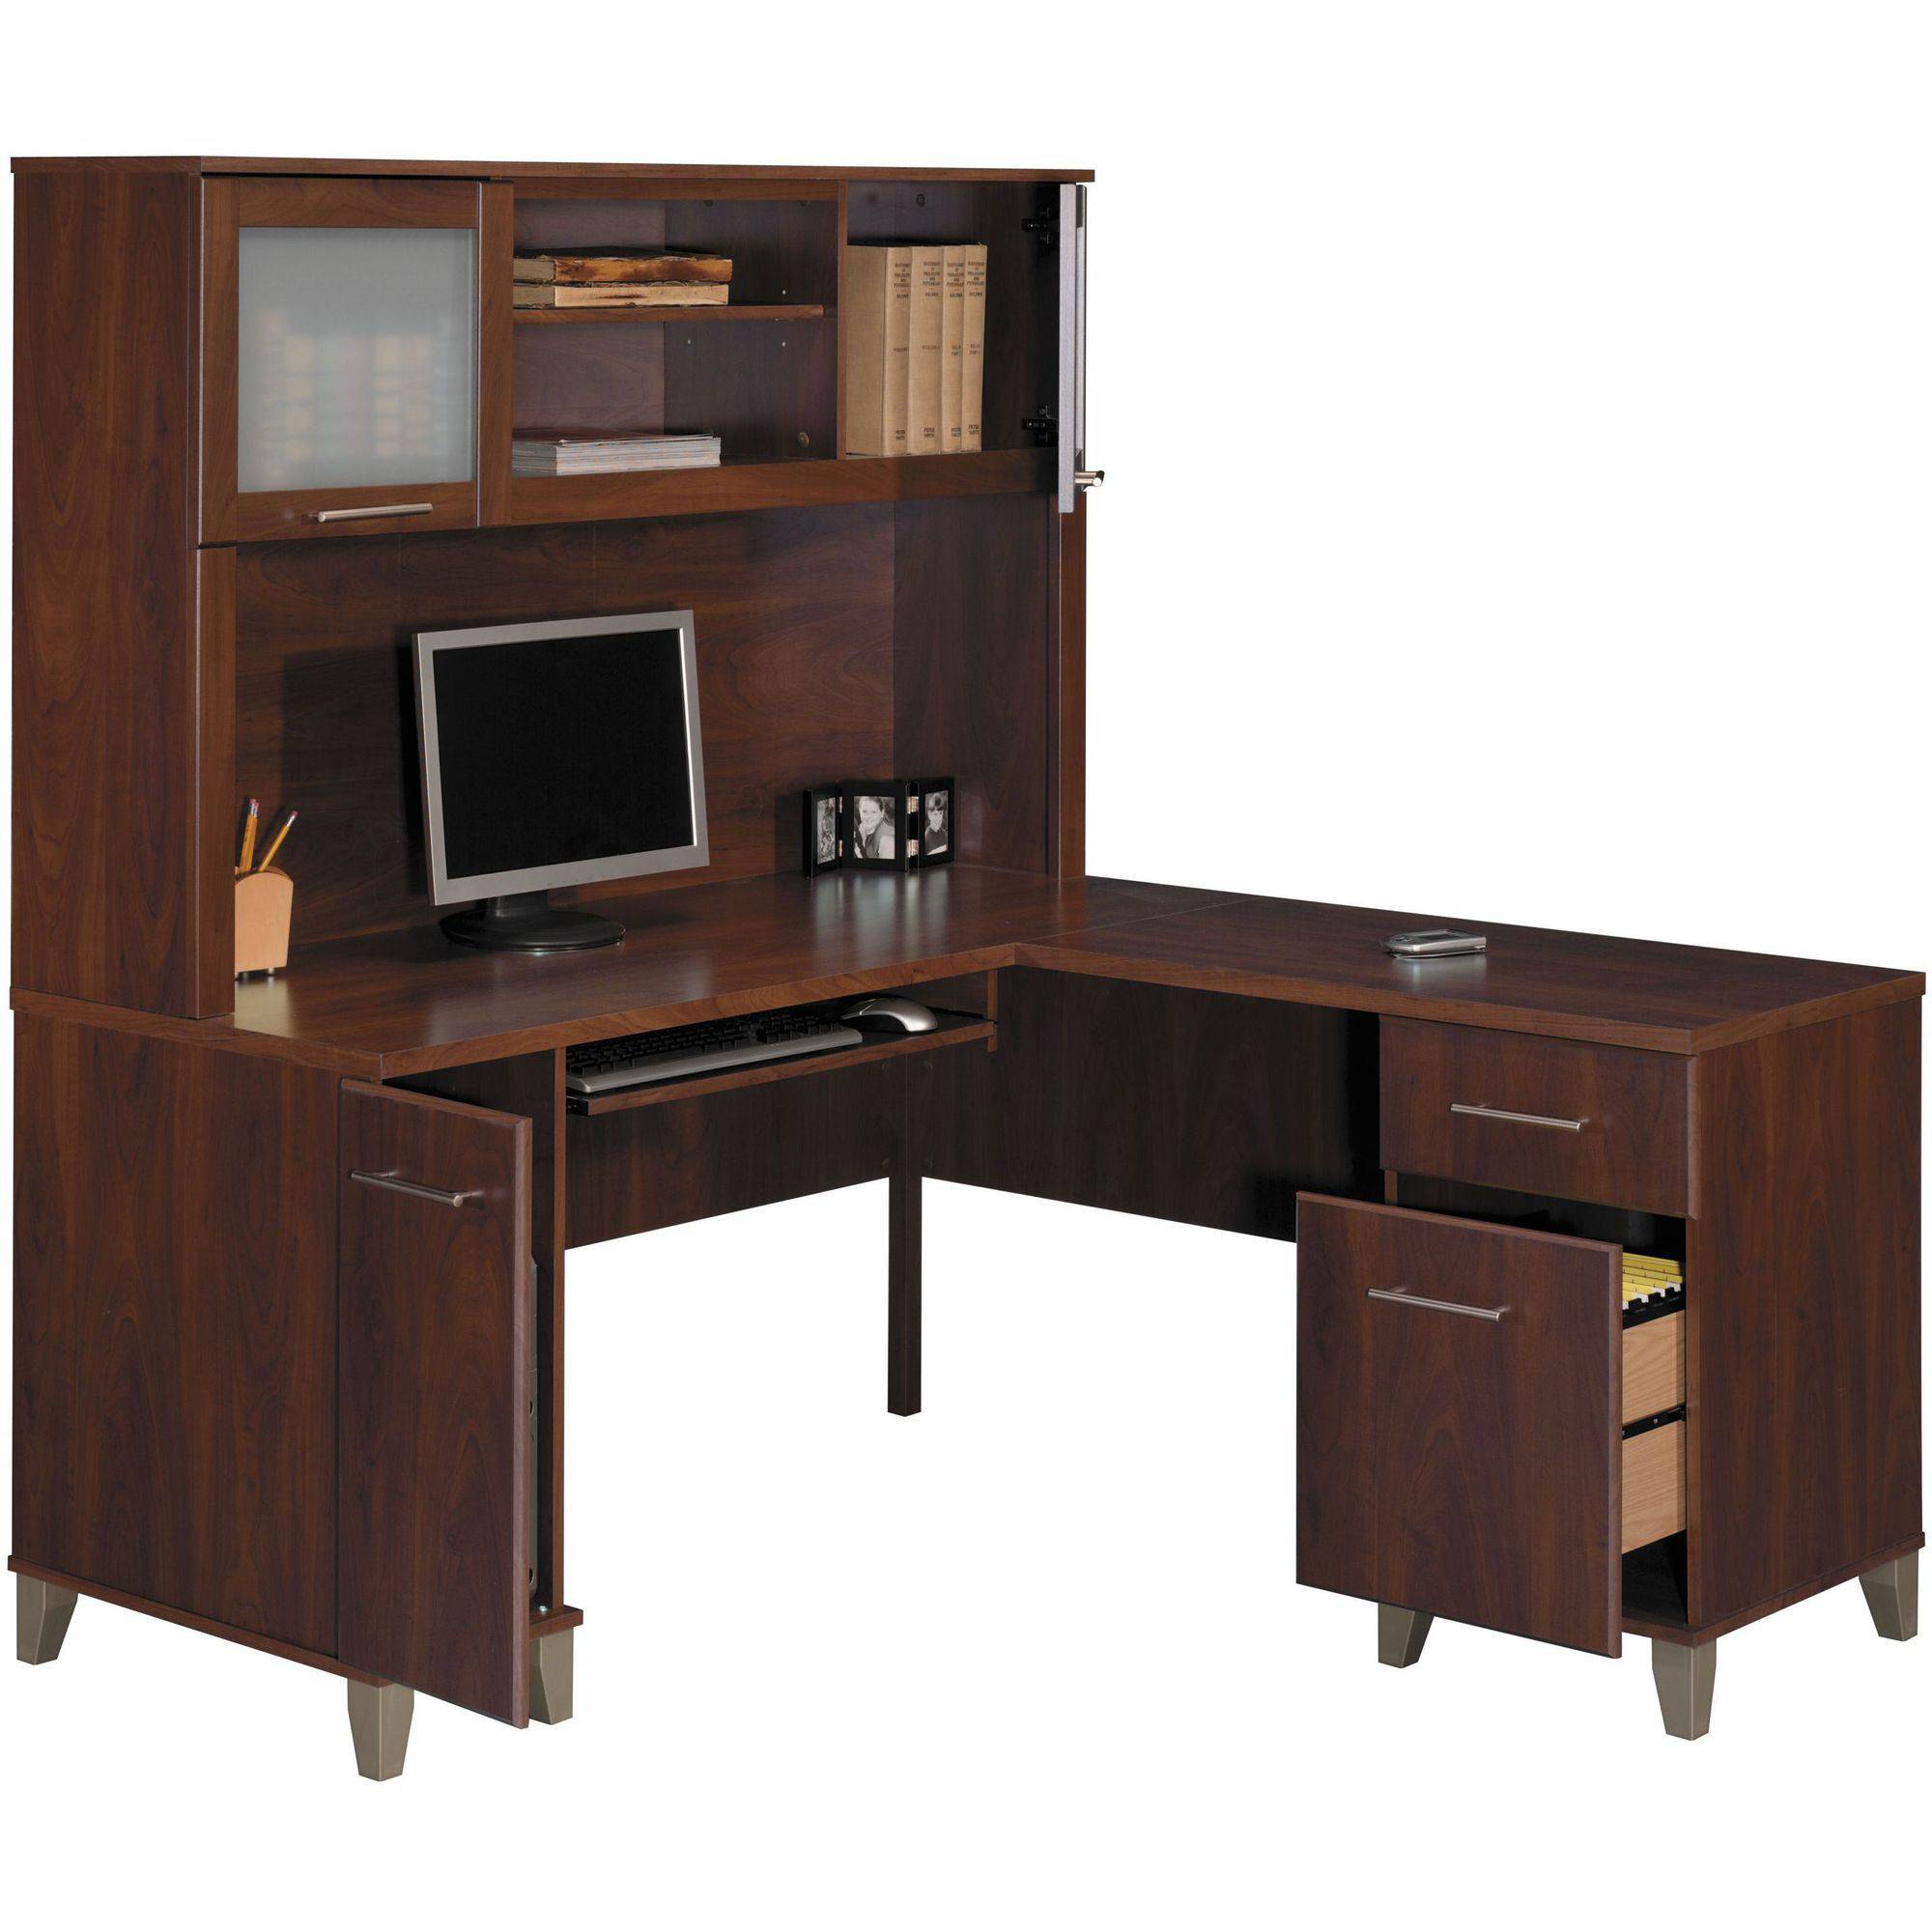 Modular l shaped computer desk bush somerset 60 vagjnkw